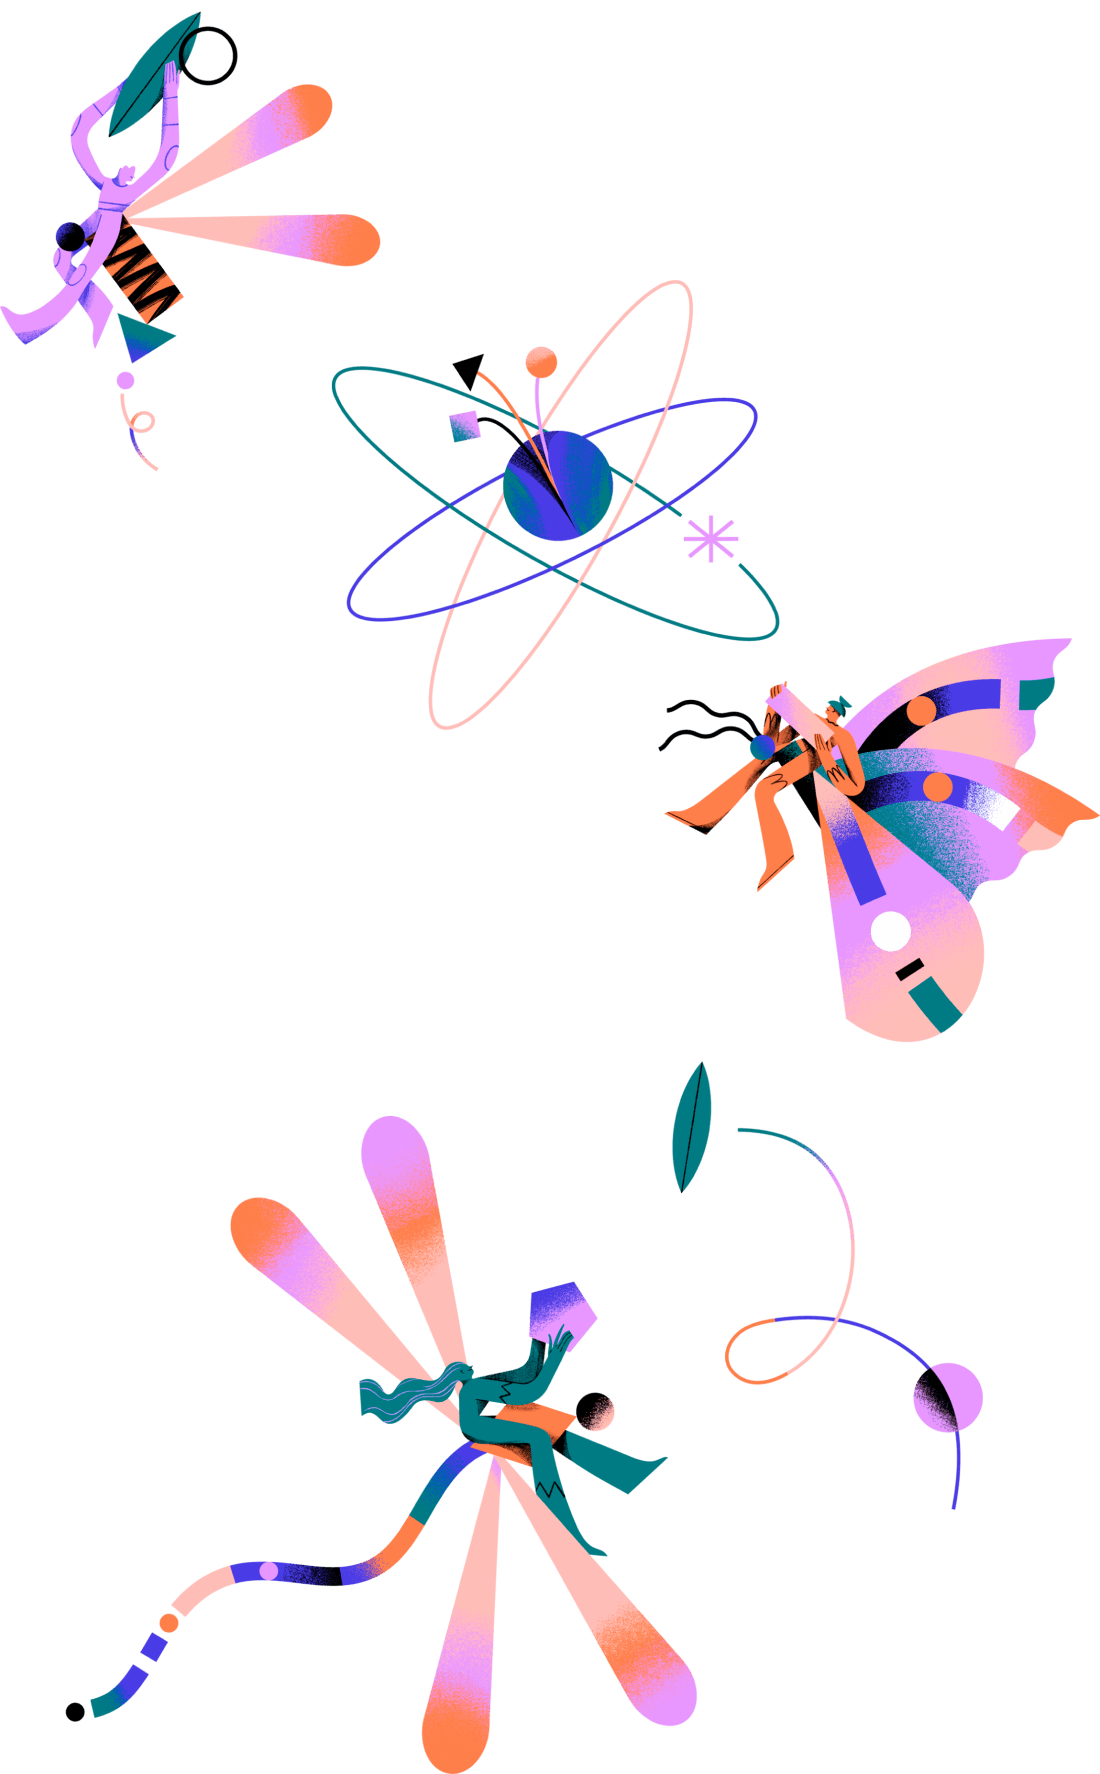 people exploring in flower together